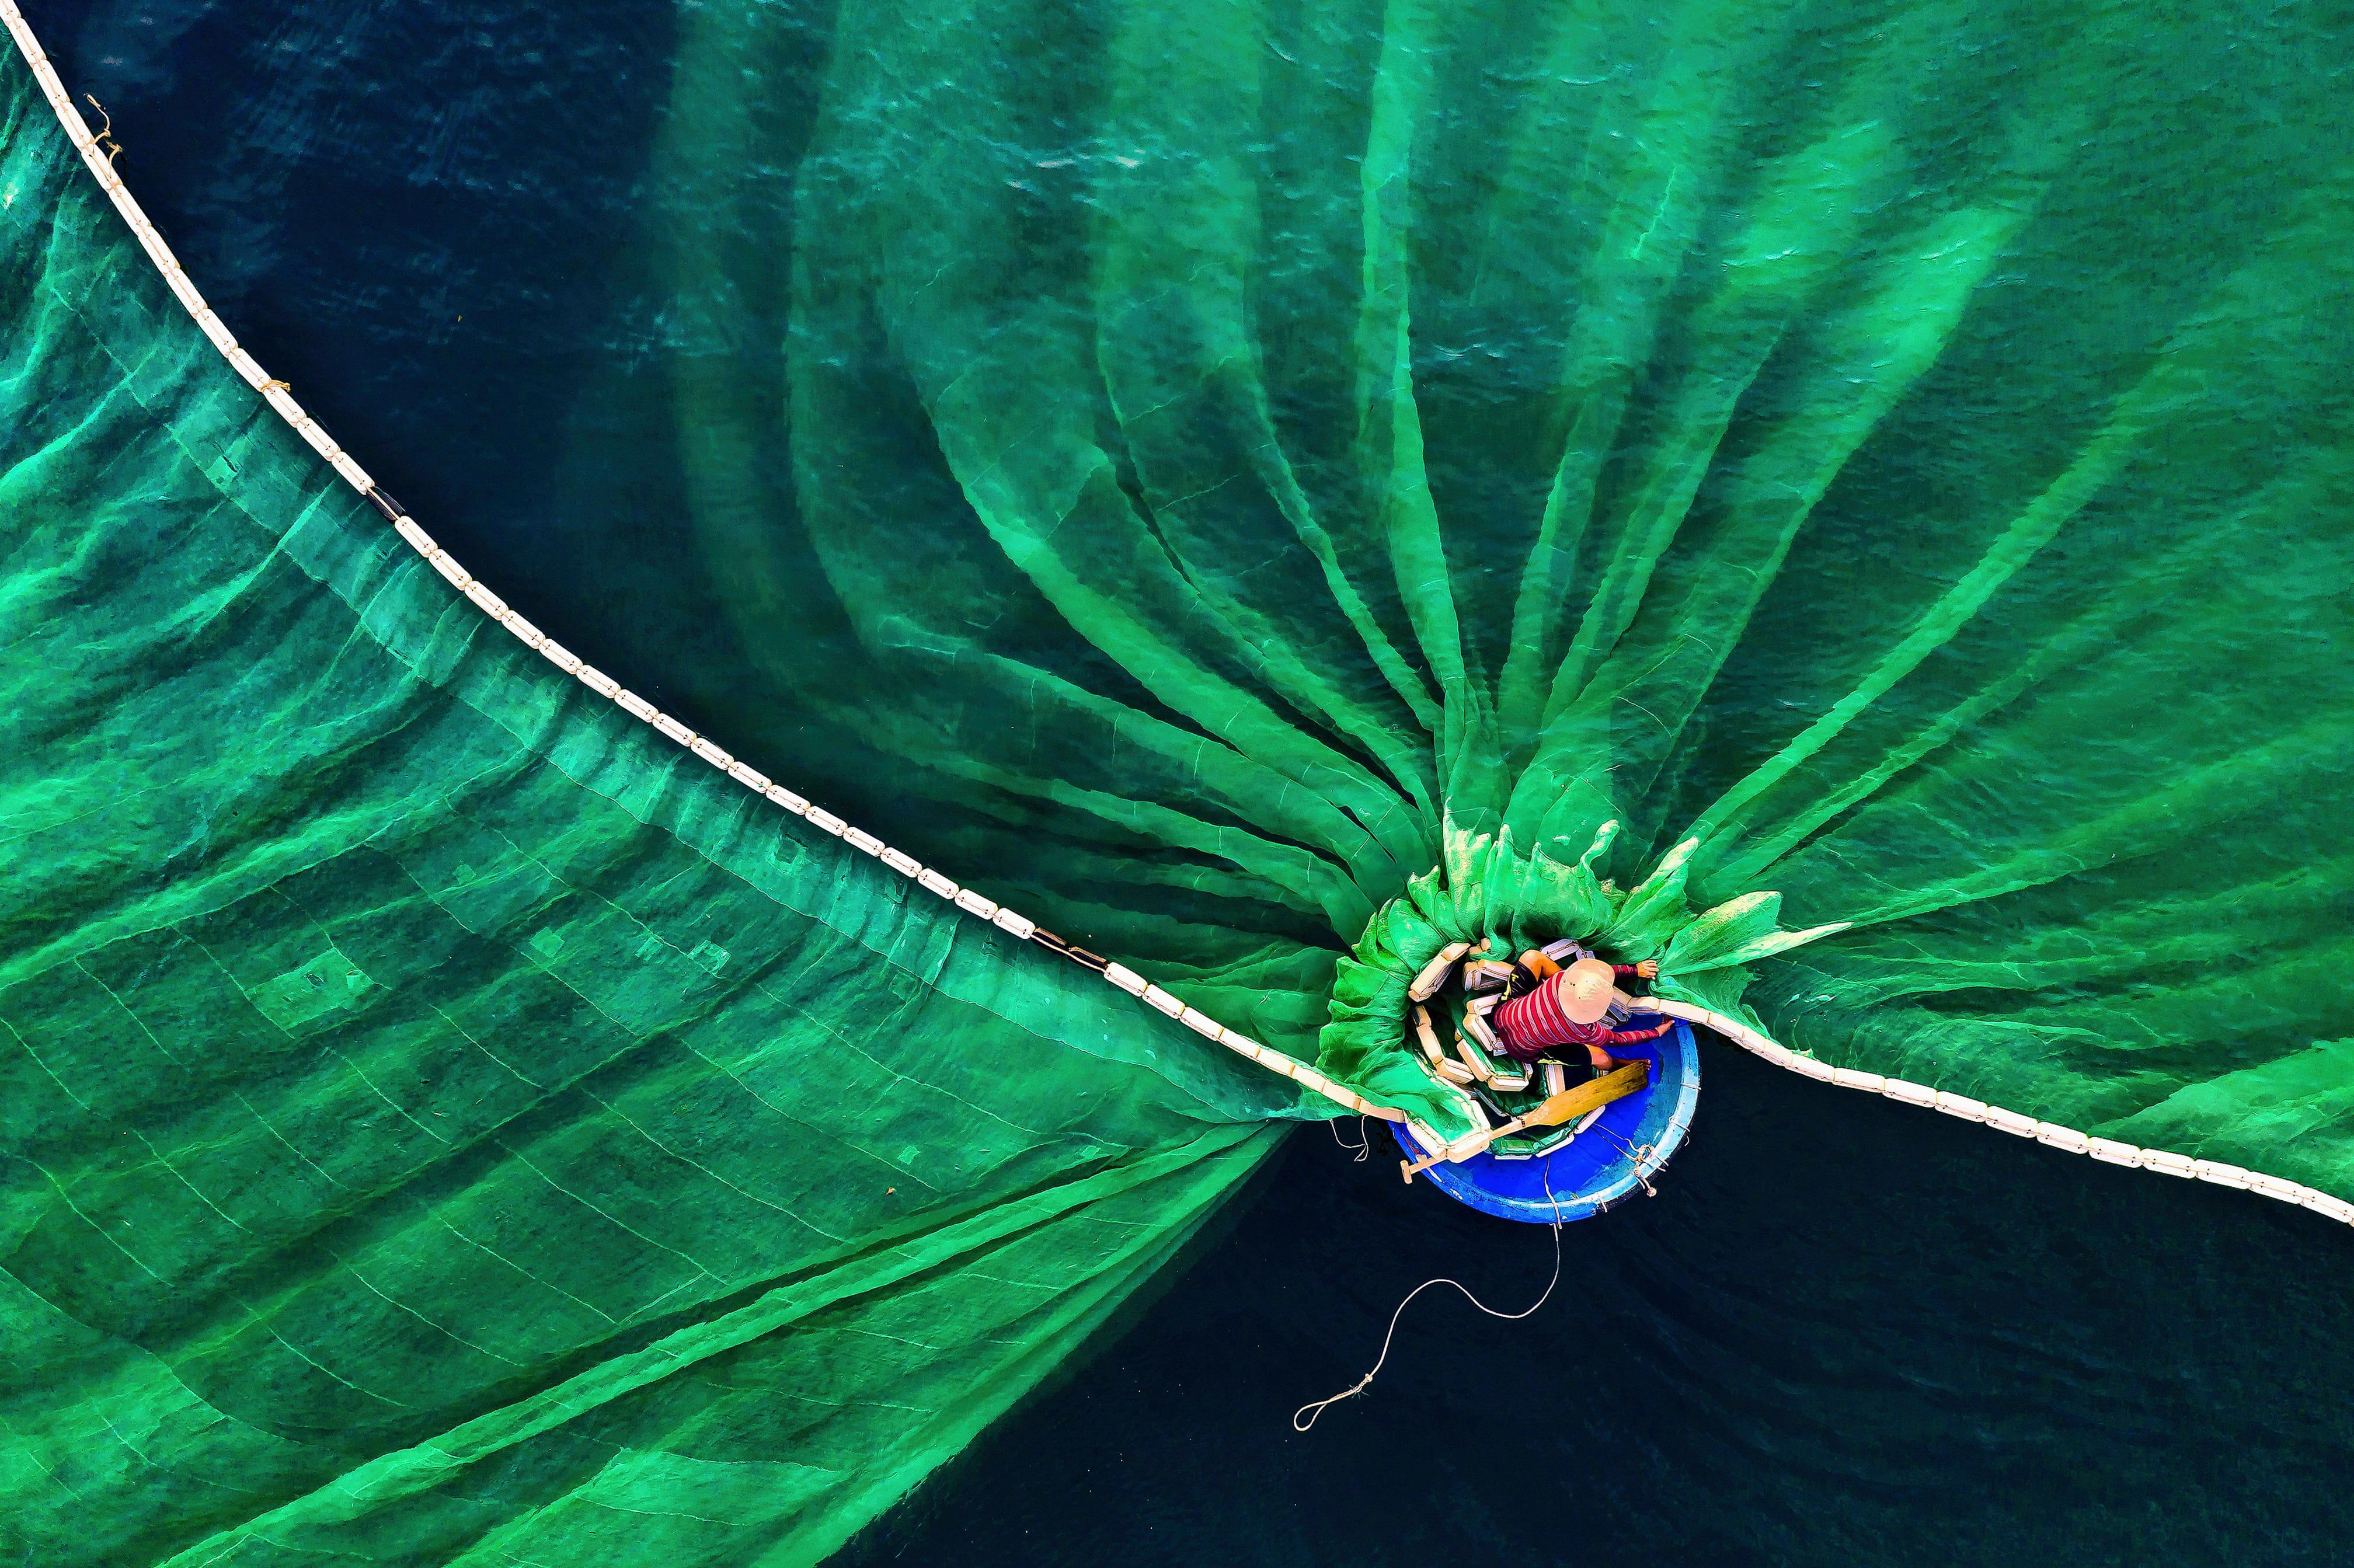 Nature Conservancy S Global Photo Contest Winners 2019 Photo Contest Nature Photos Nature Conservation